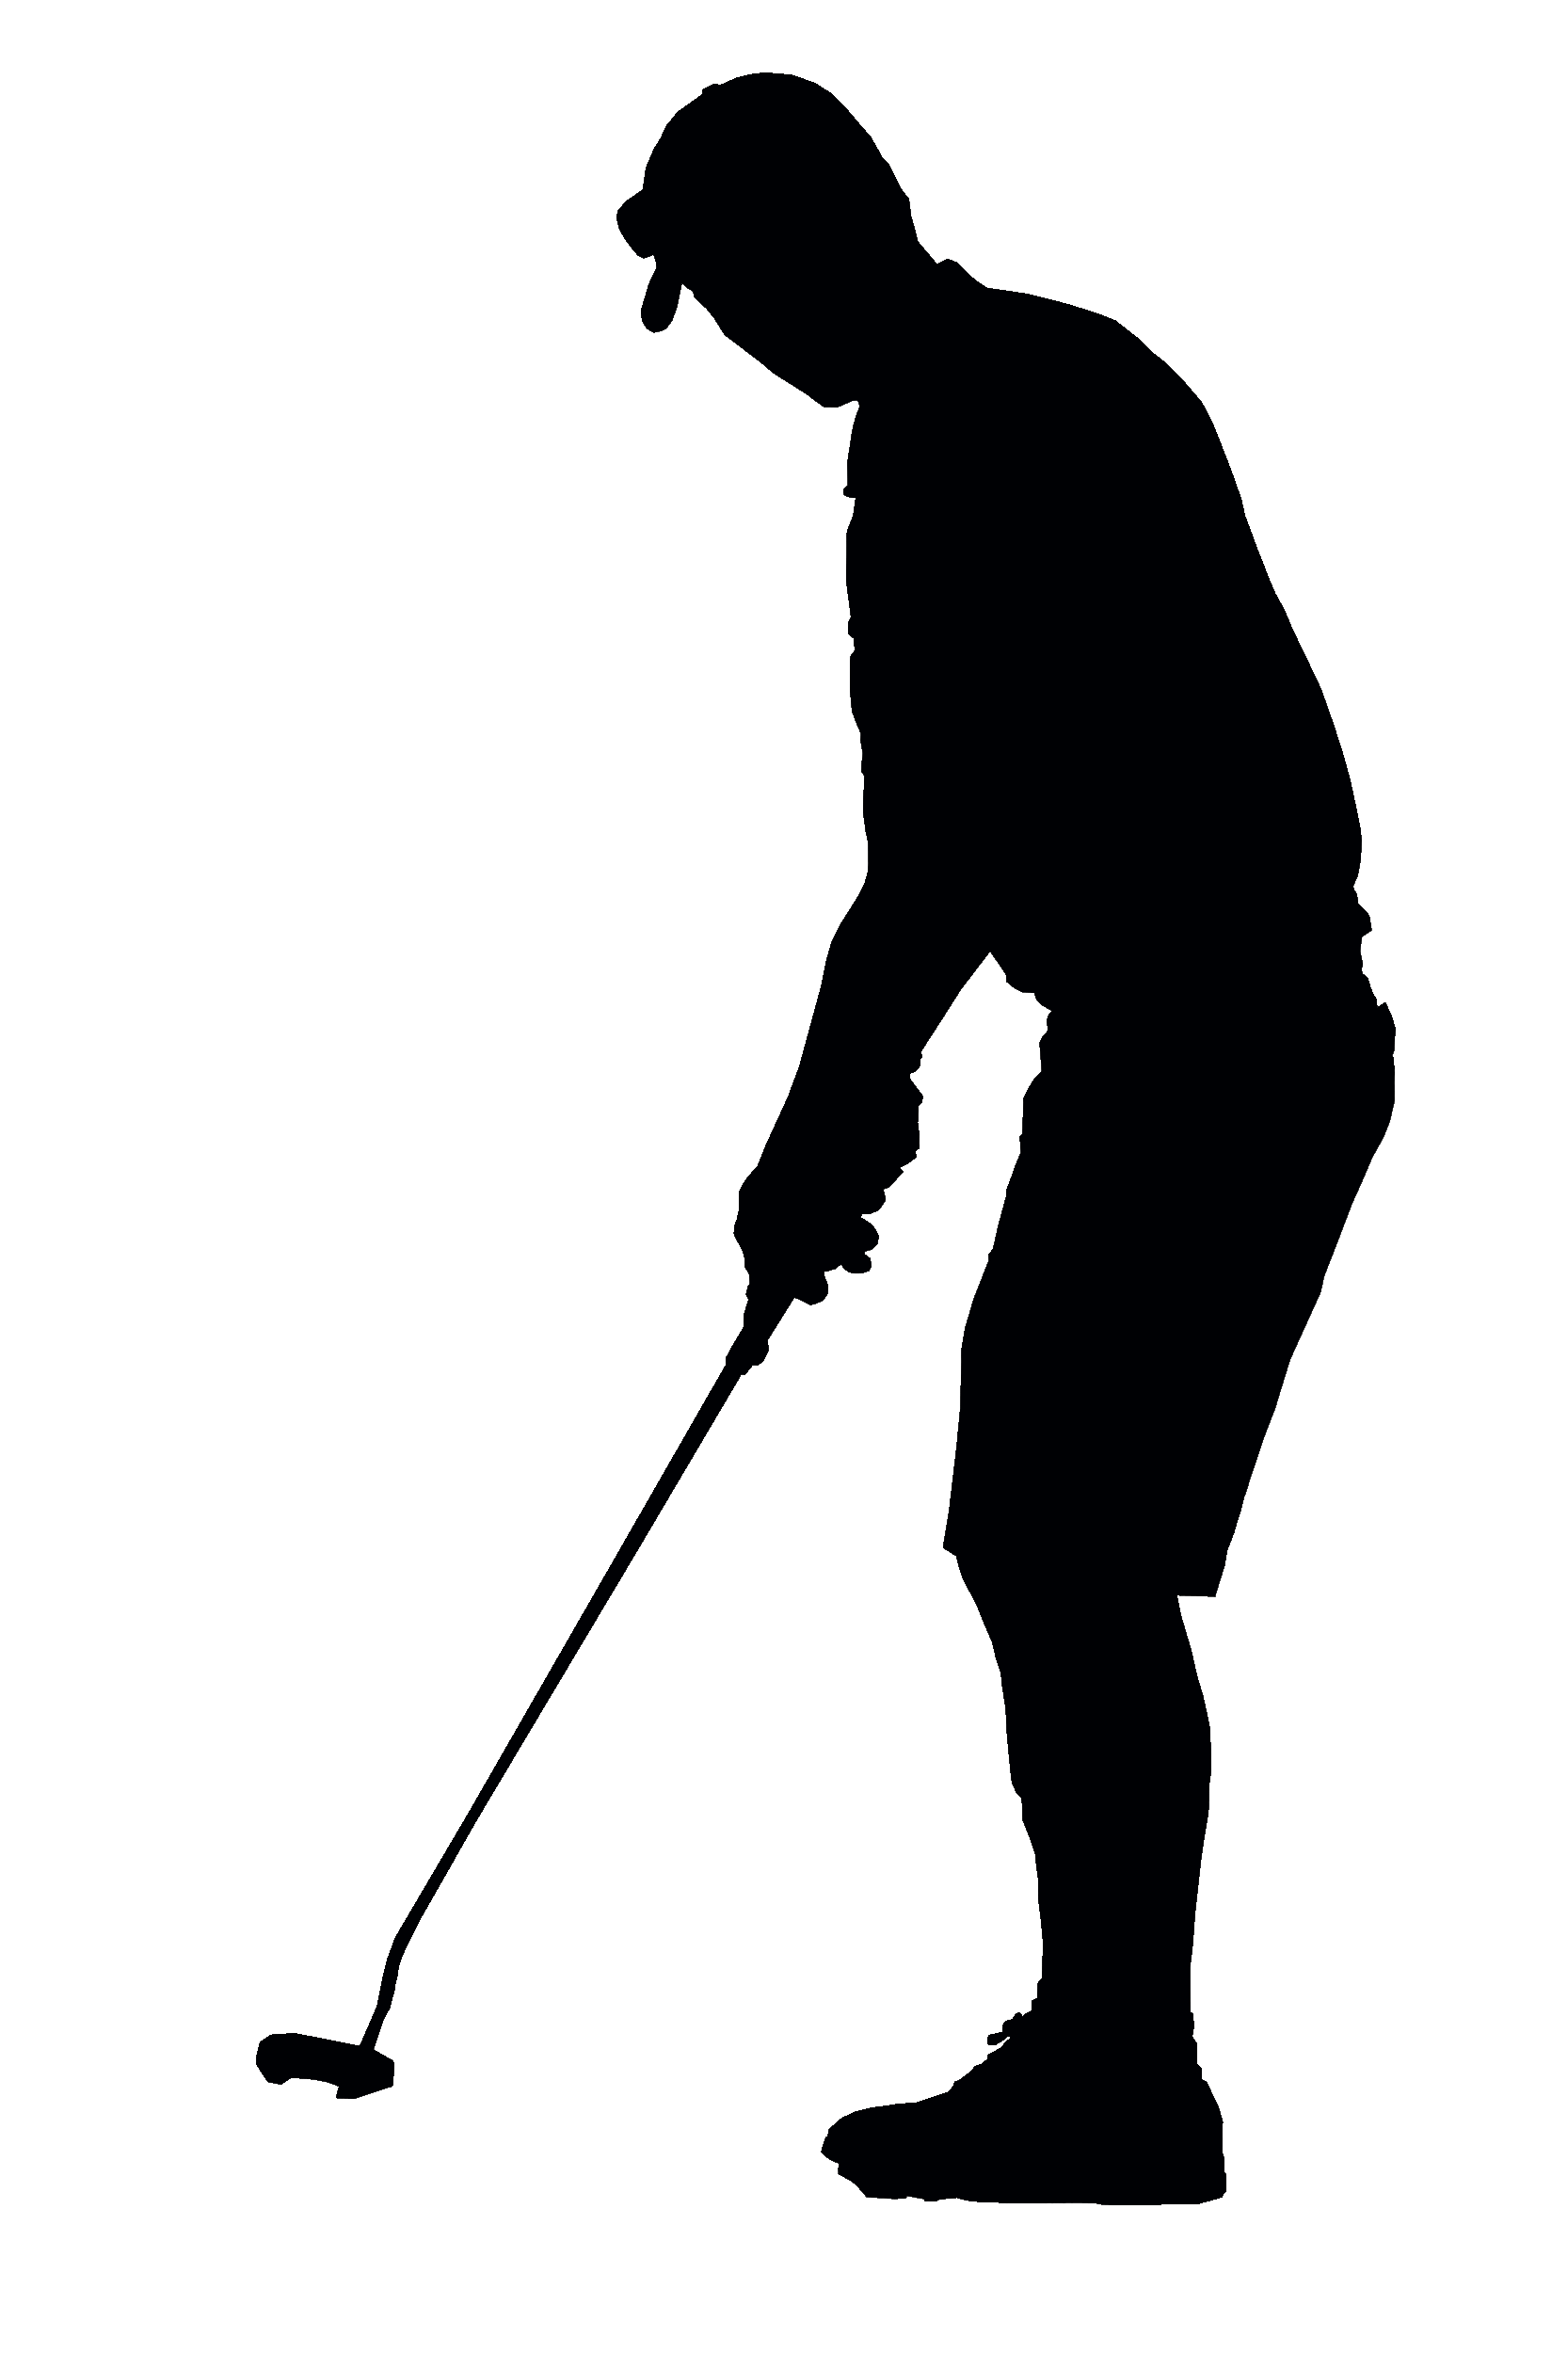 Golfer transparent. Black silhouette png stickpng